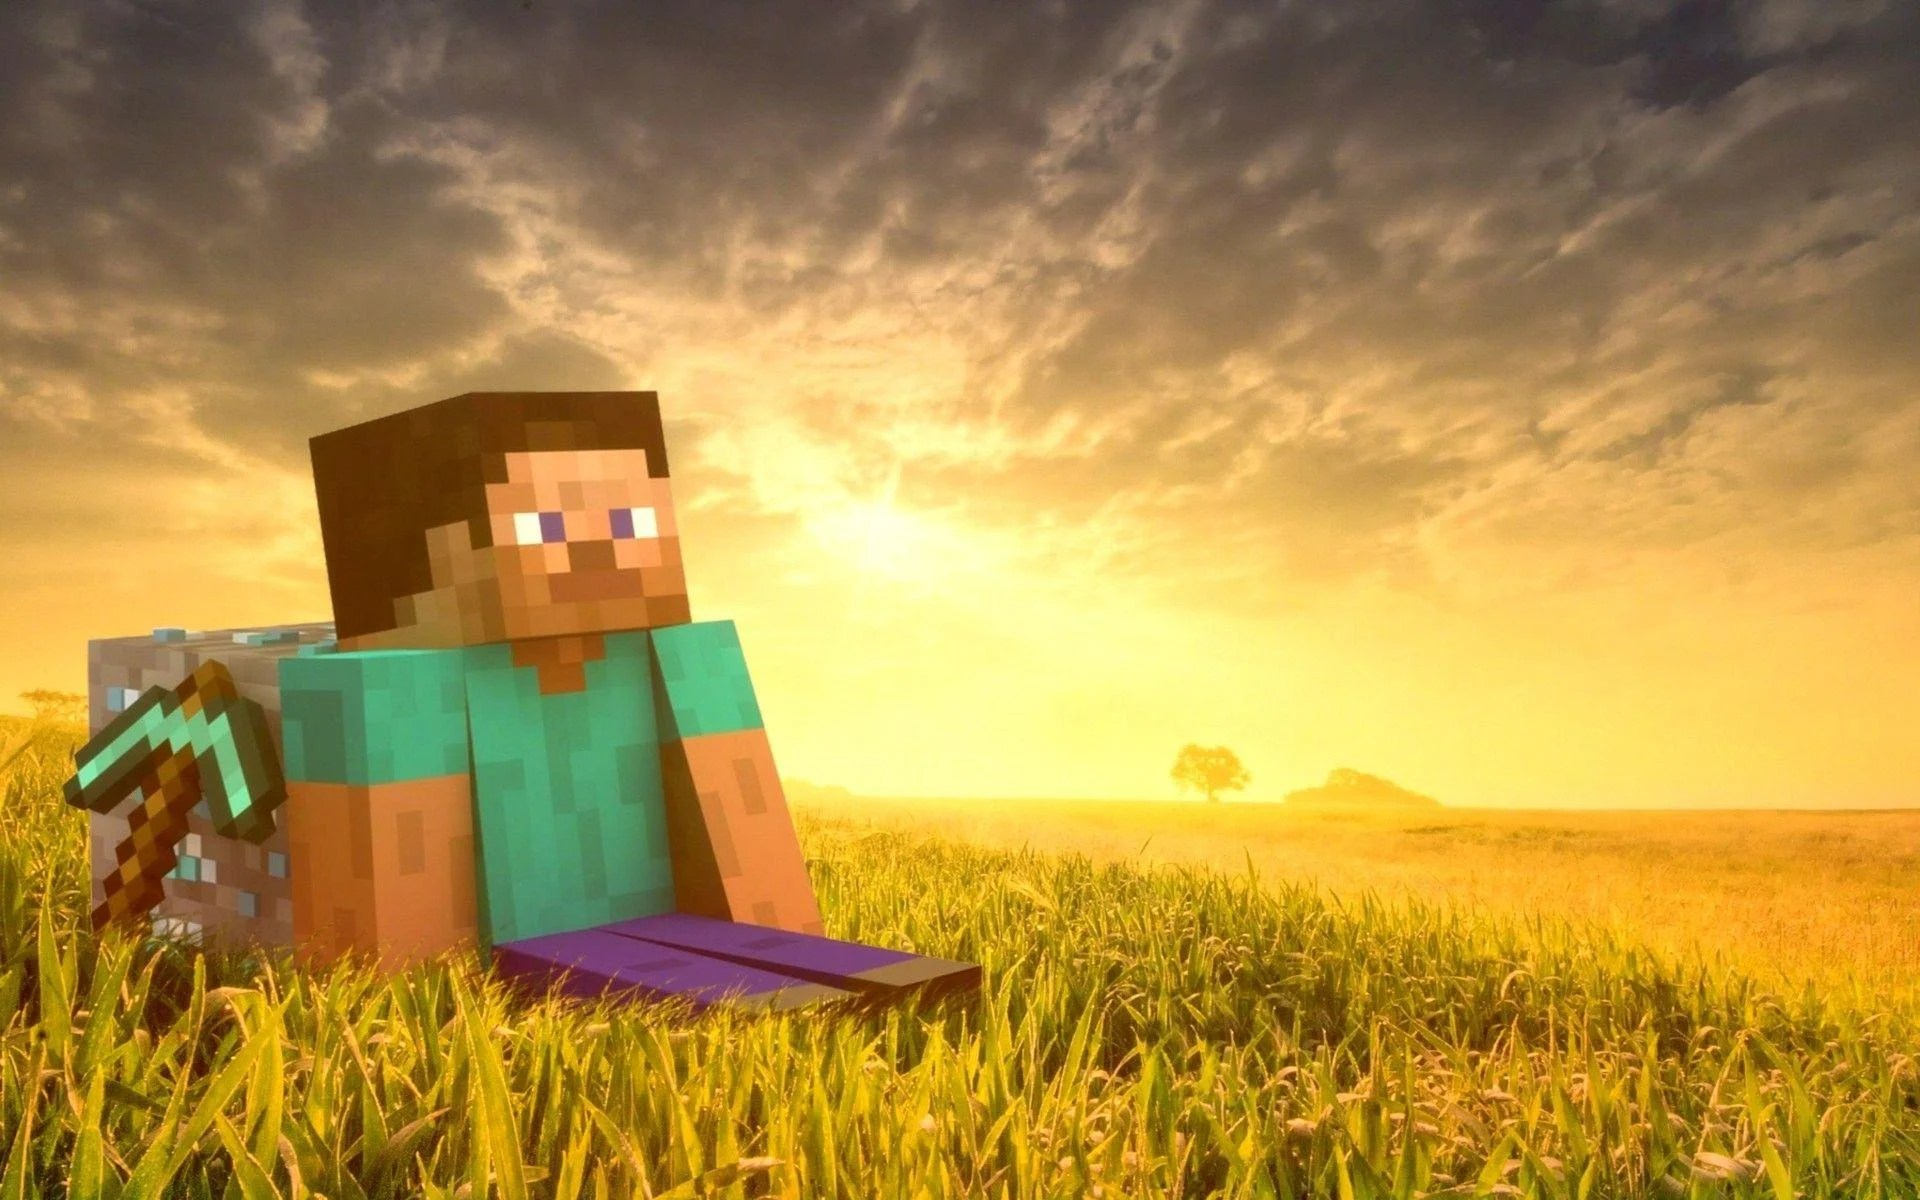 Minecraft Wallpapers HD   Wallpaper Cave Minecraft Wallpapers   Full HD wallpaper search